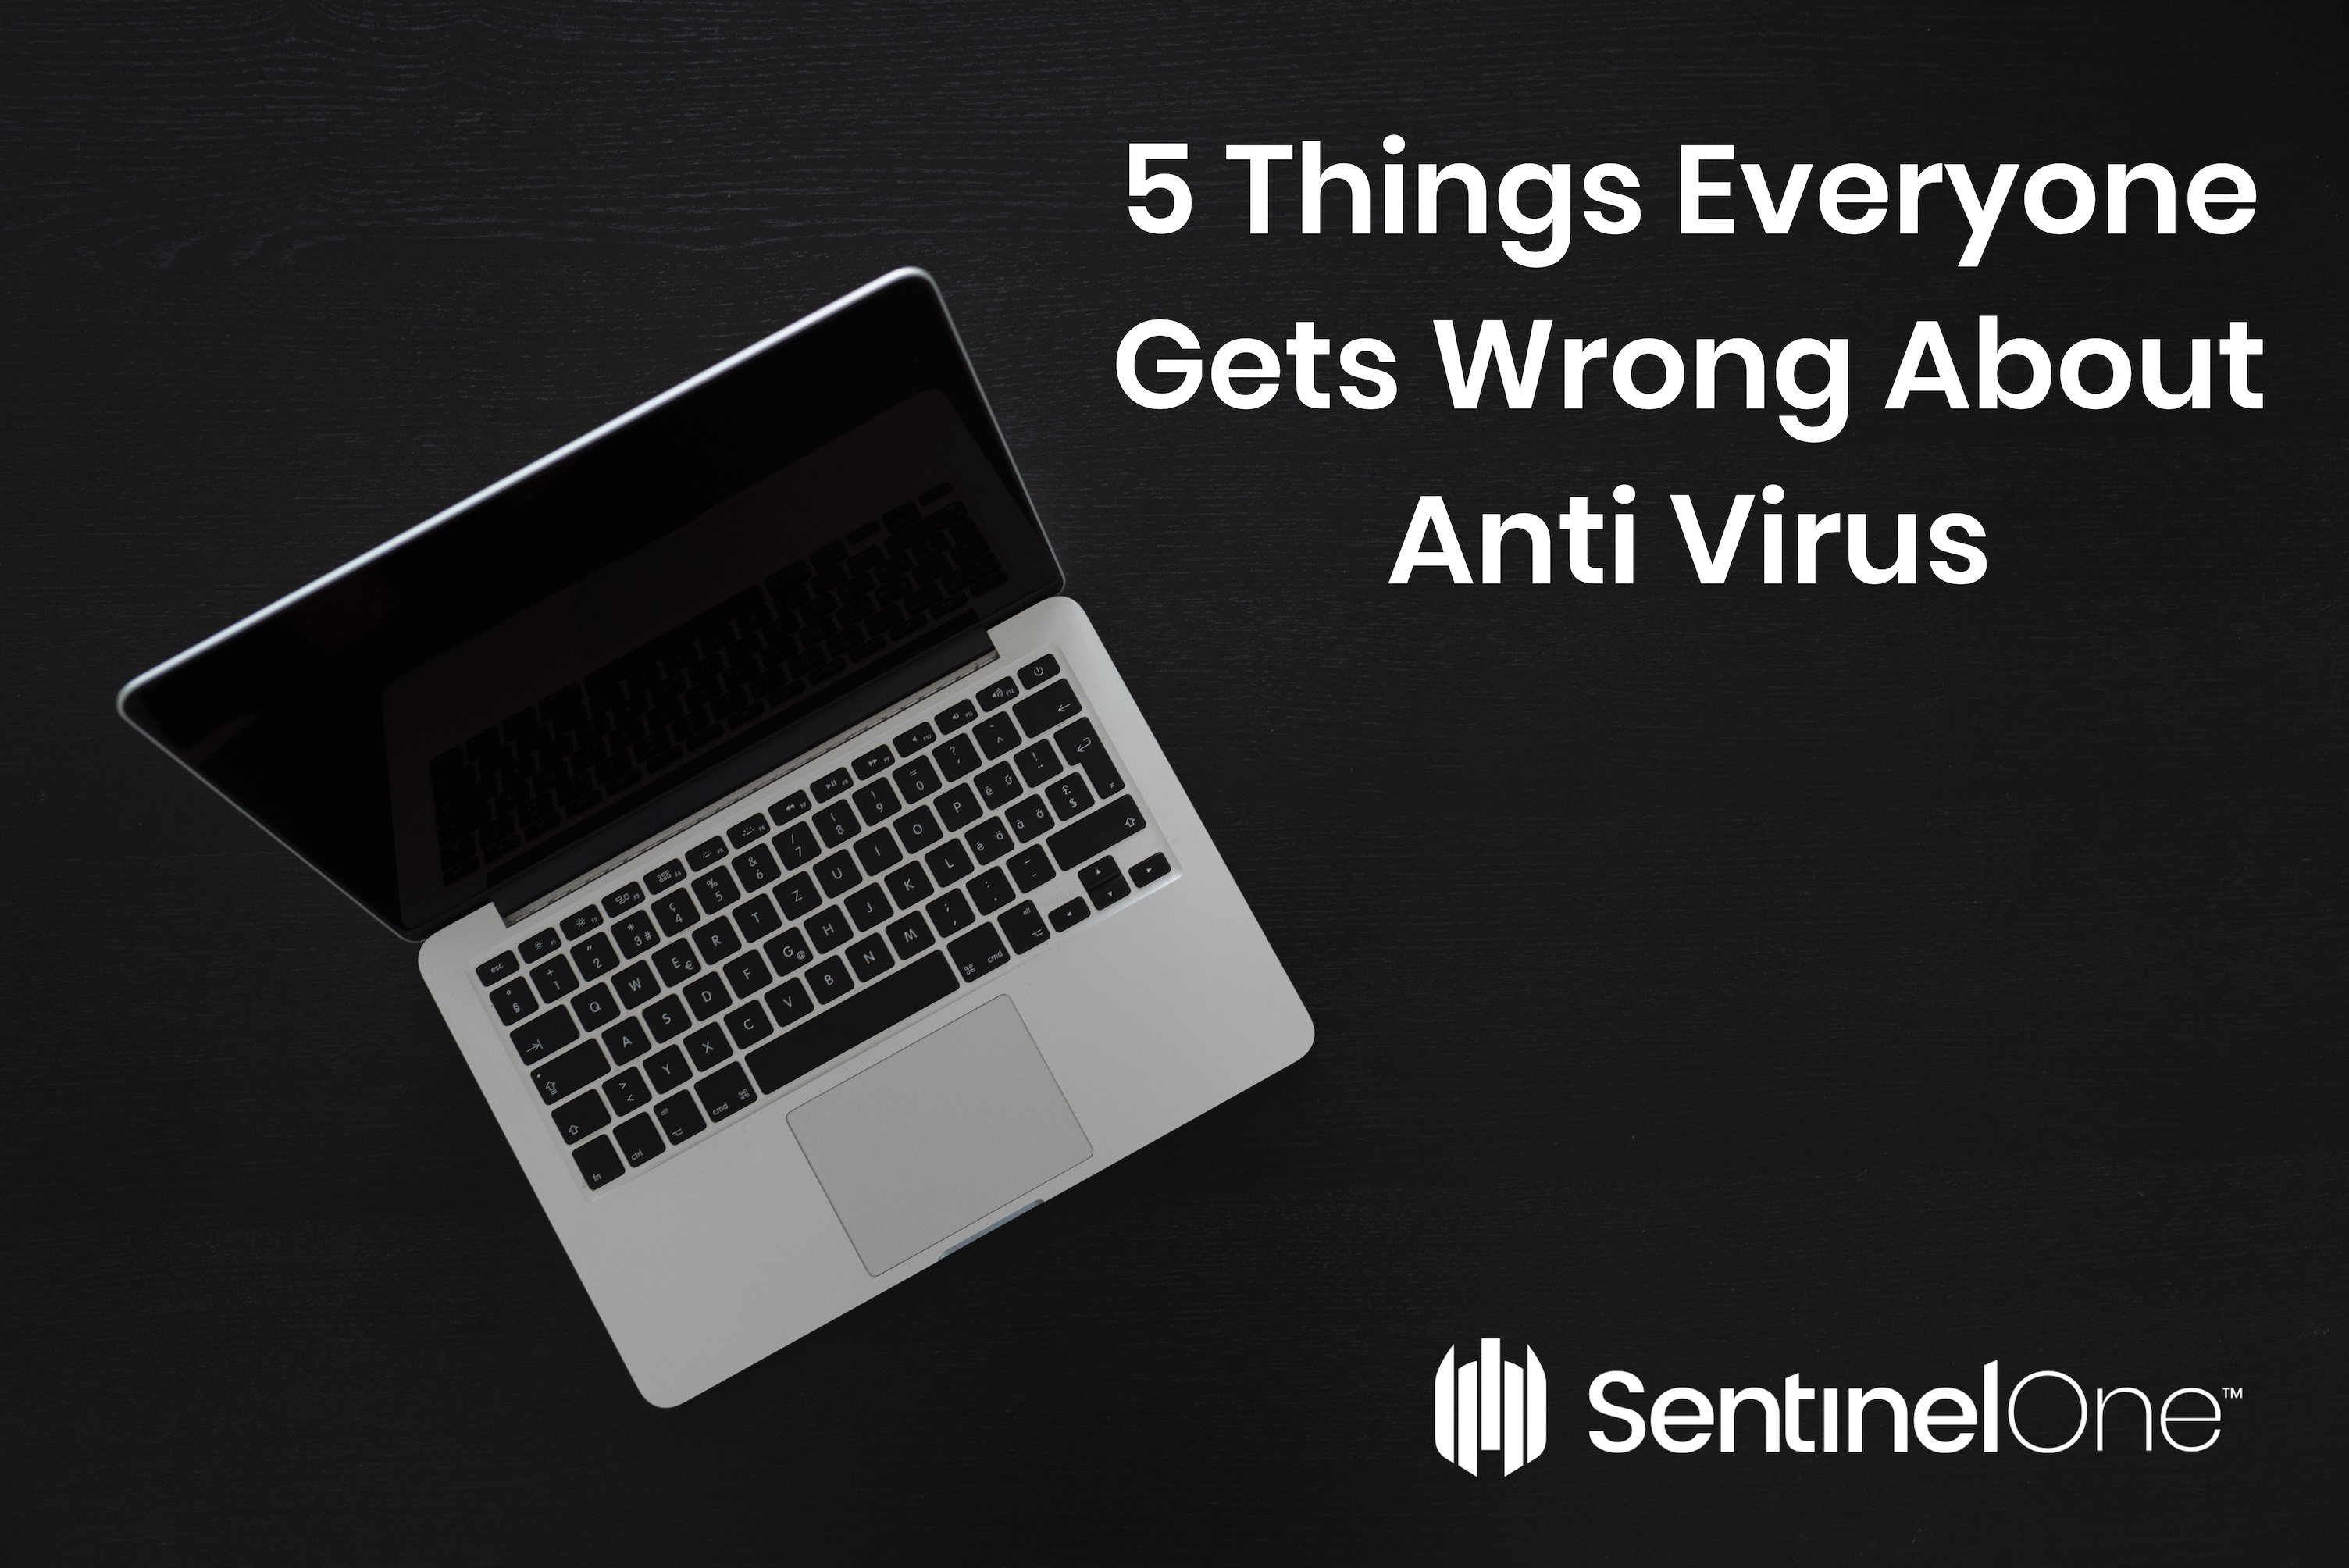 SentinelOne's opened laptop with 5 things everyone gets wrong about anti virus displaying.